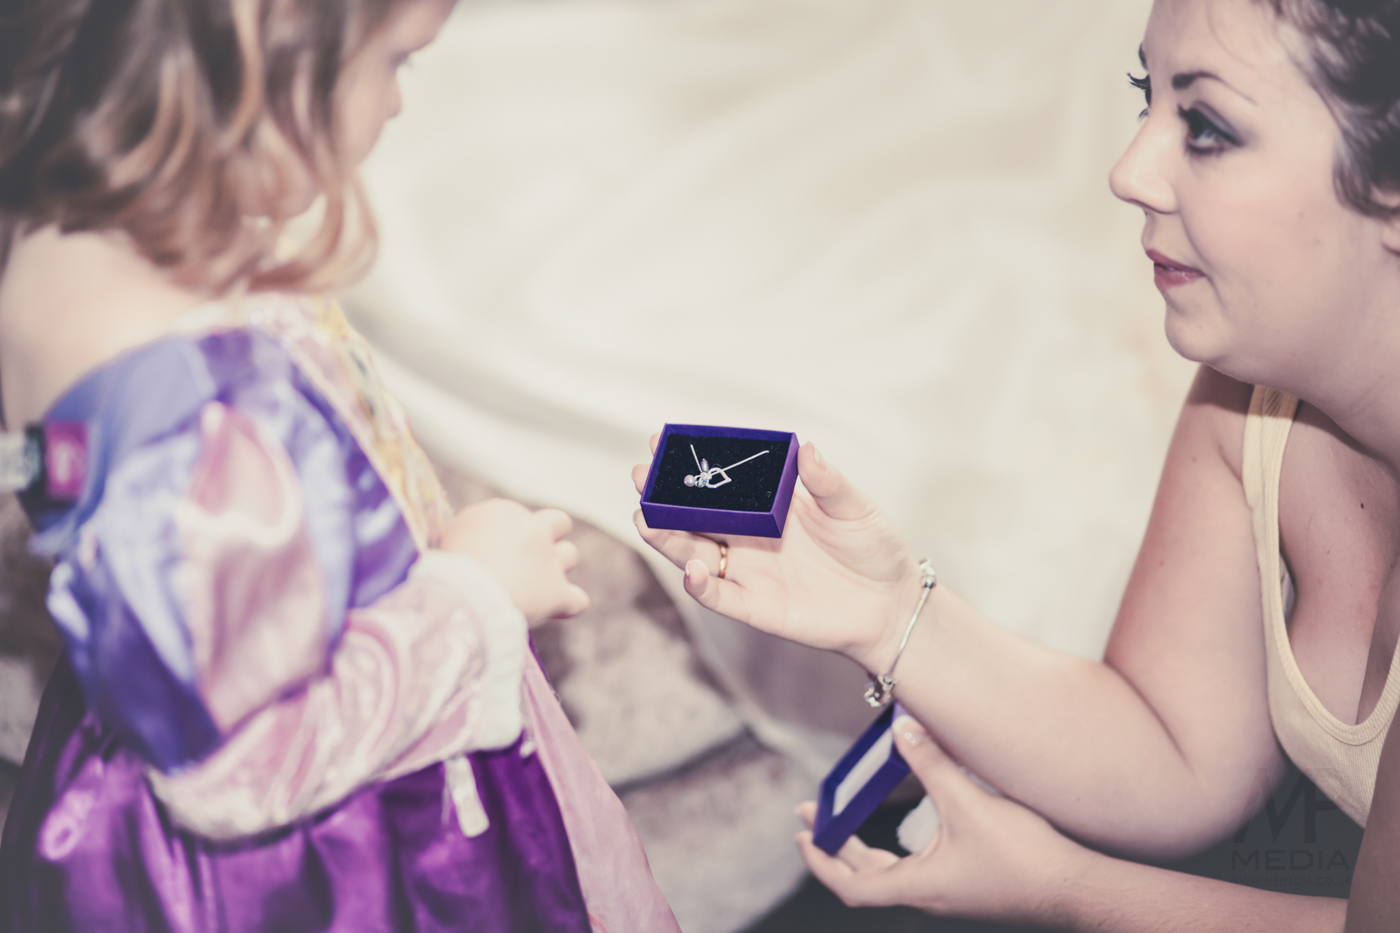 060 - Chris and Natalies Wedding (MAIN) - DO NOT SHARE THIS IMAGES ONLINE -2.JPG